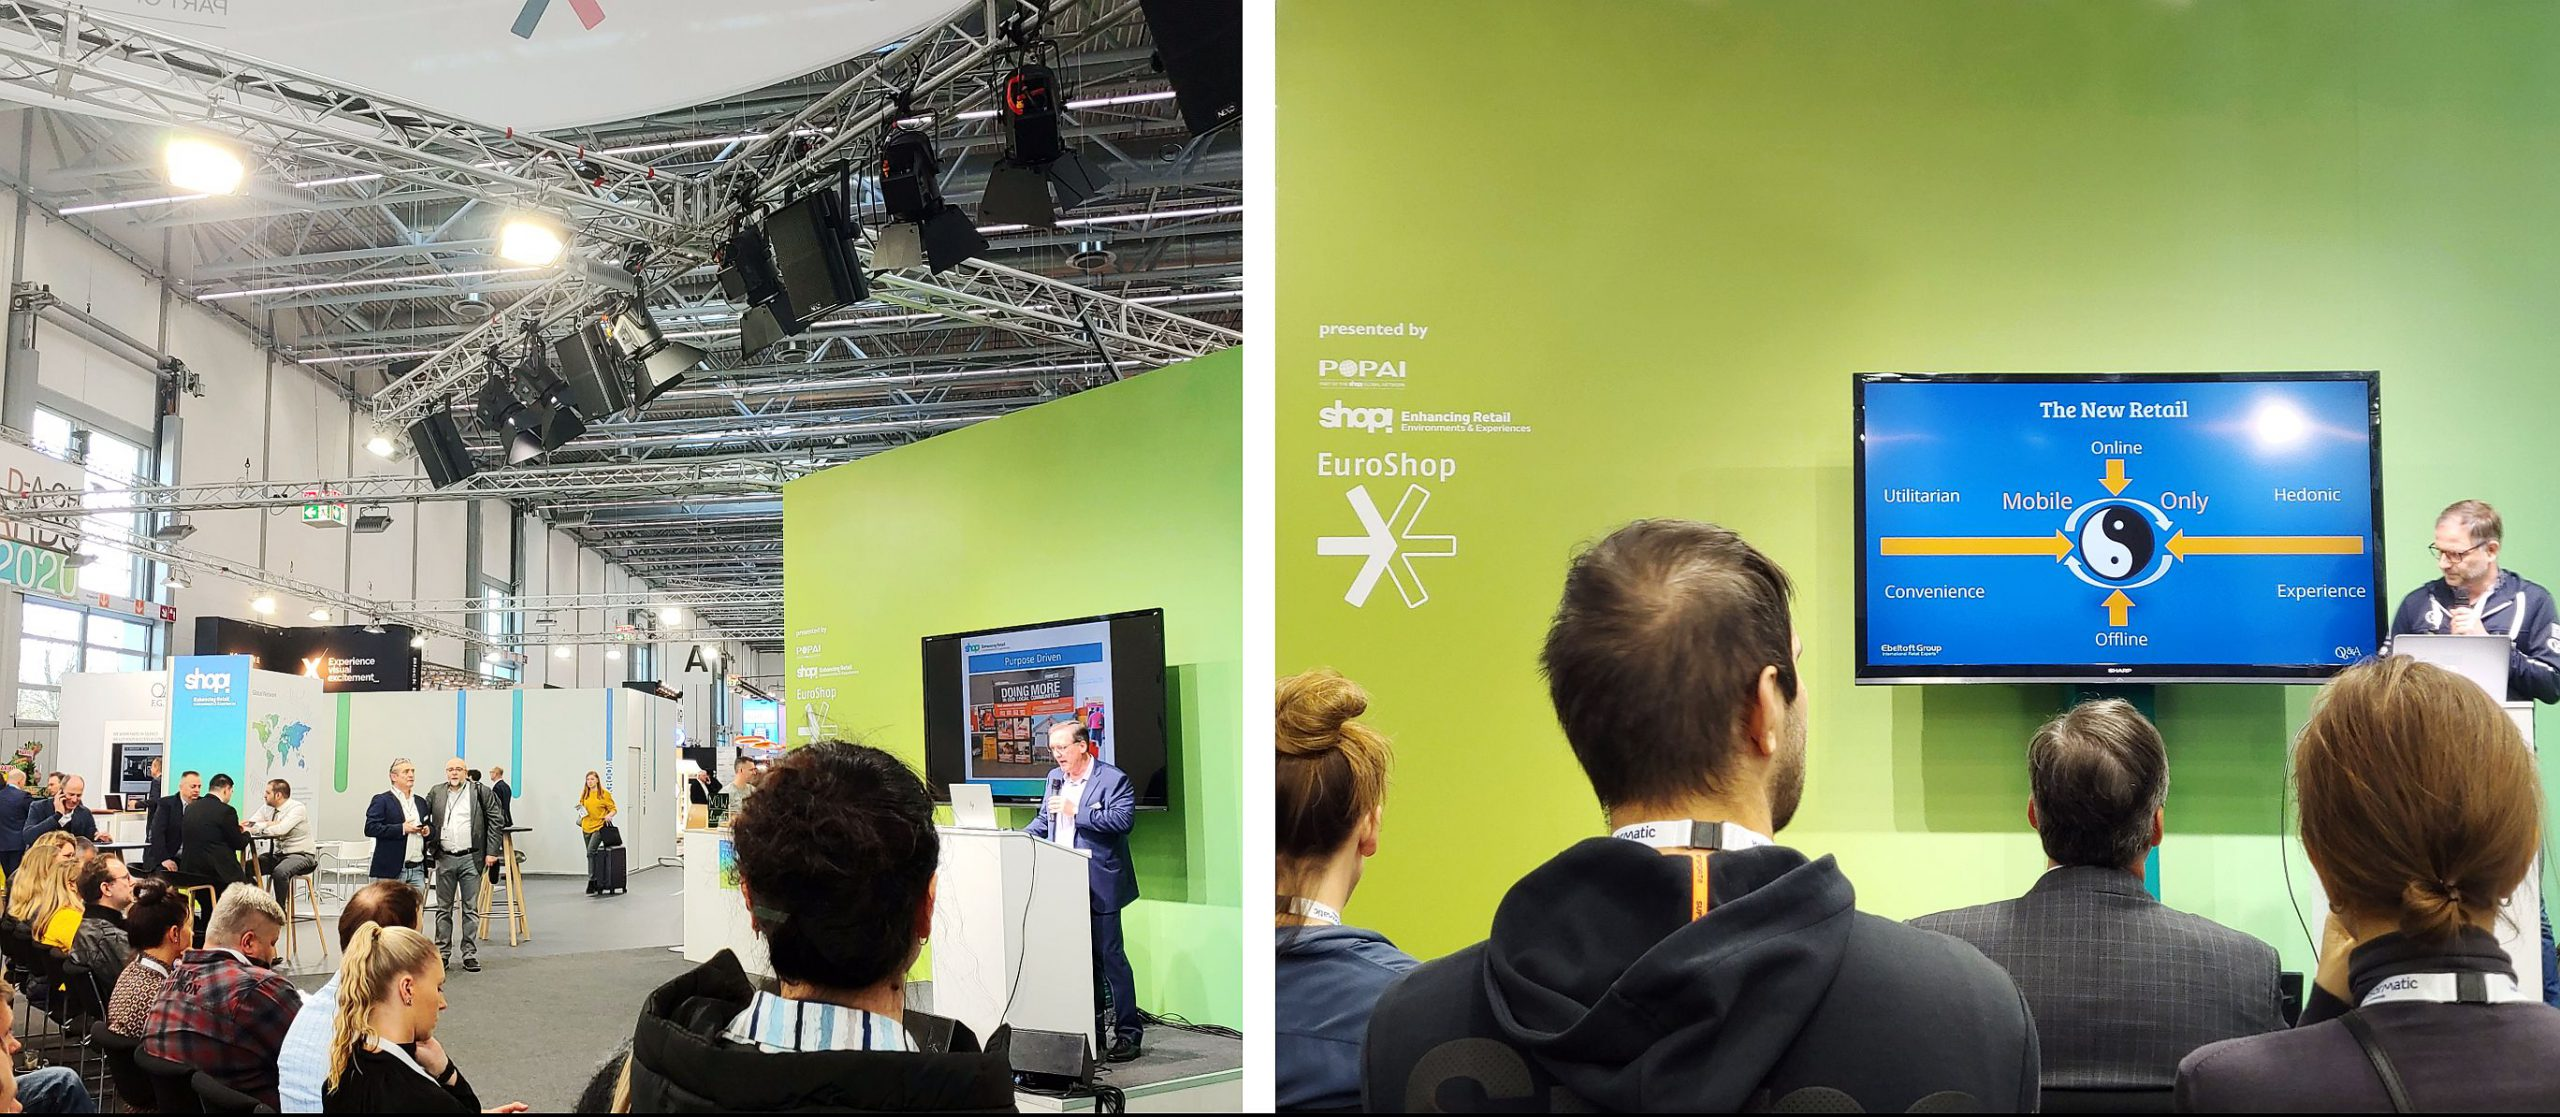 Moss takes in the trends across the expert presentations at EuroShop